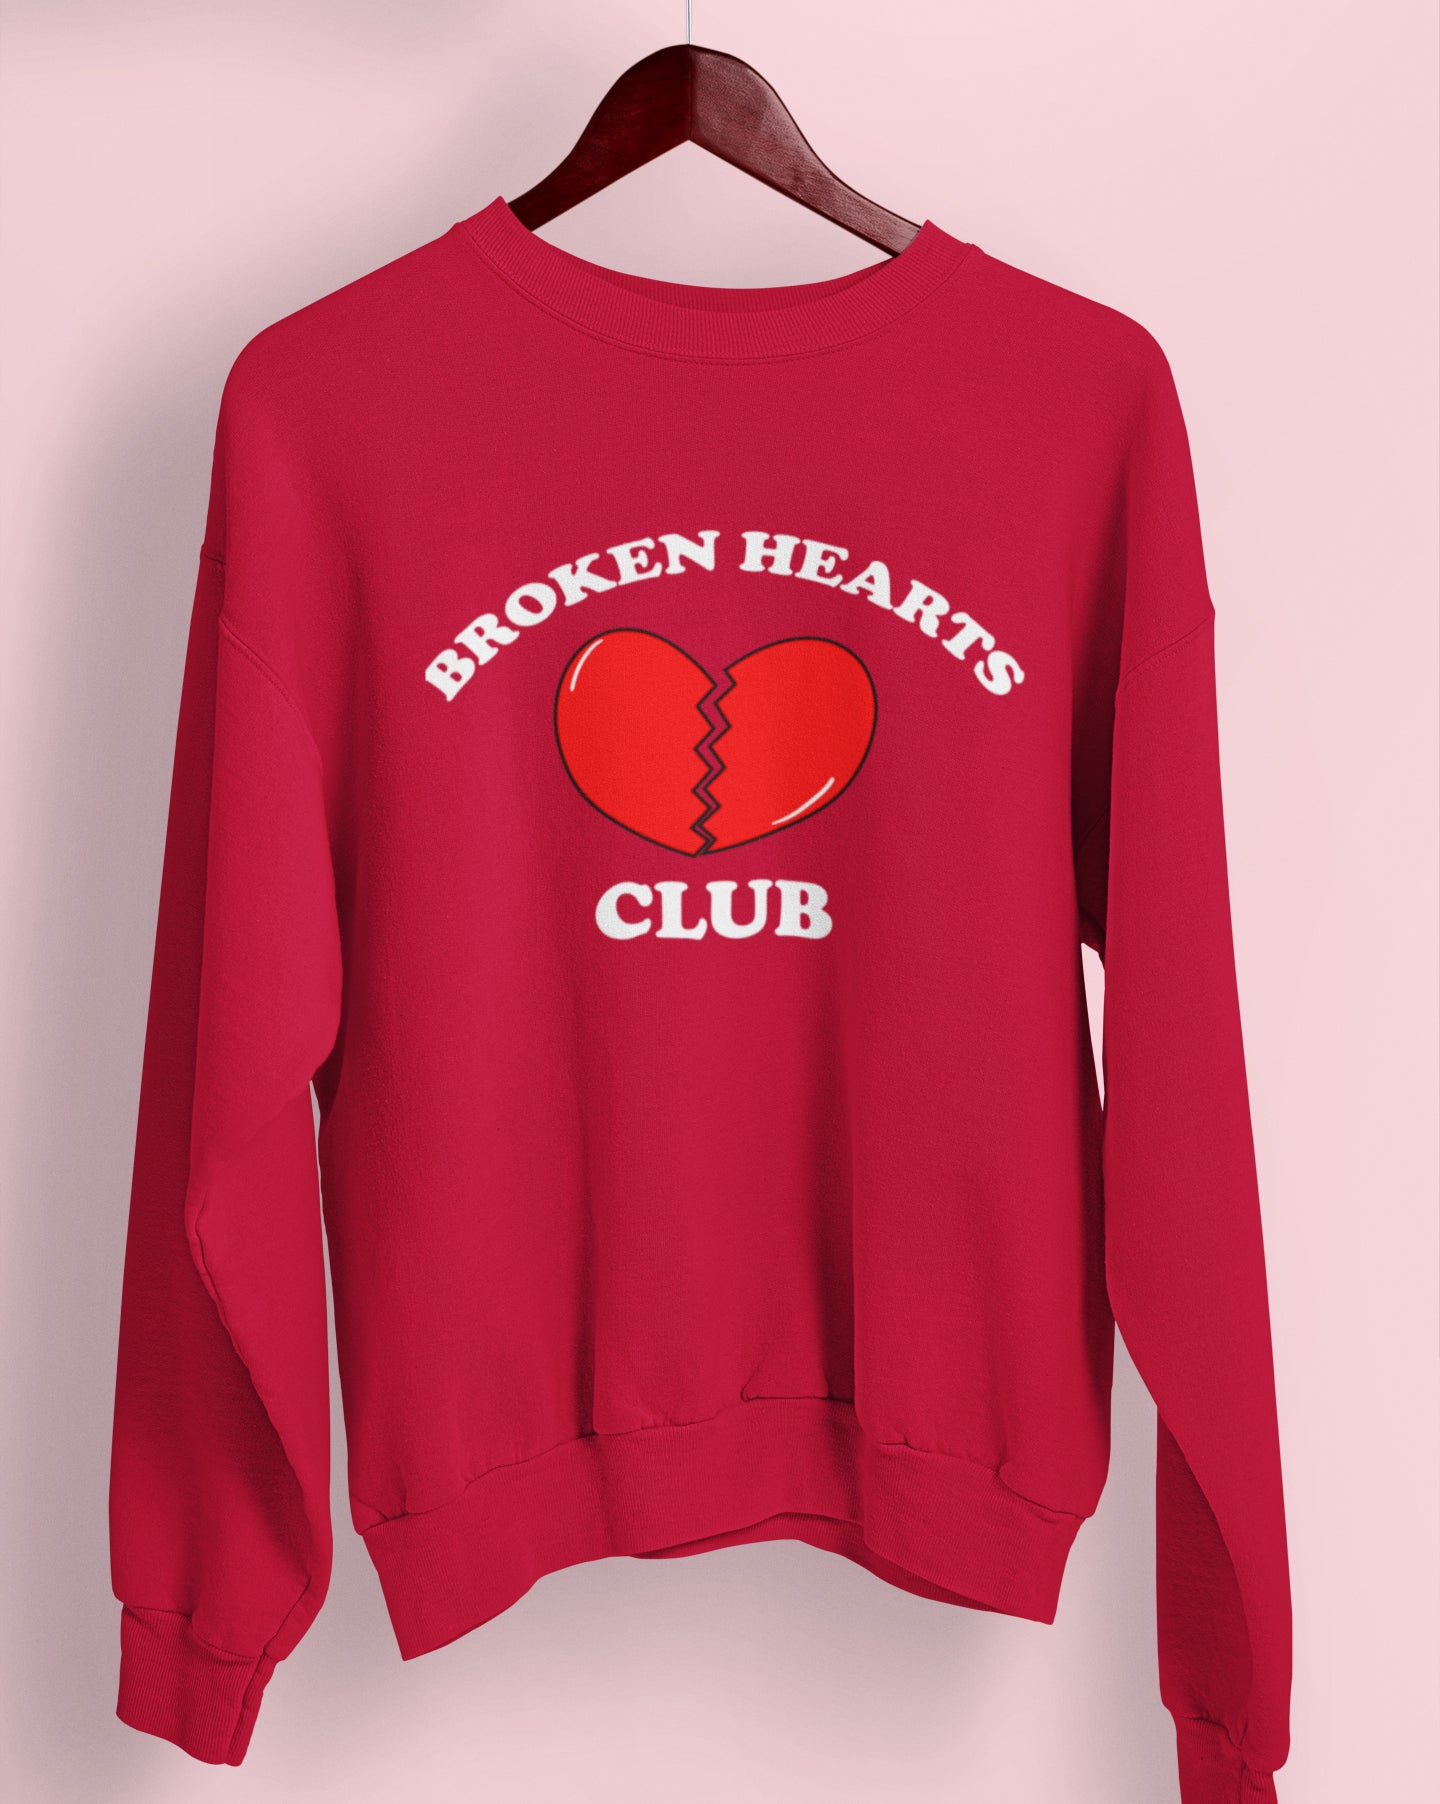 Red sweatshirt with a broken heart that says broken hearts club - HighCiti